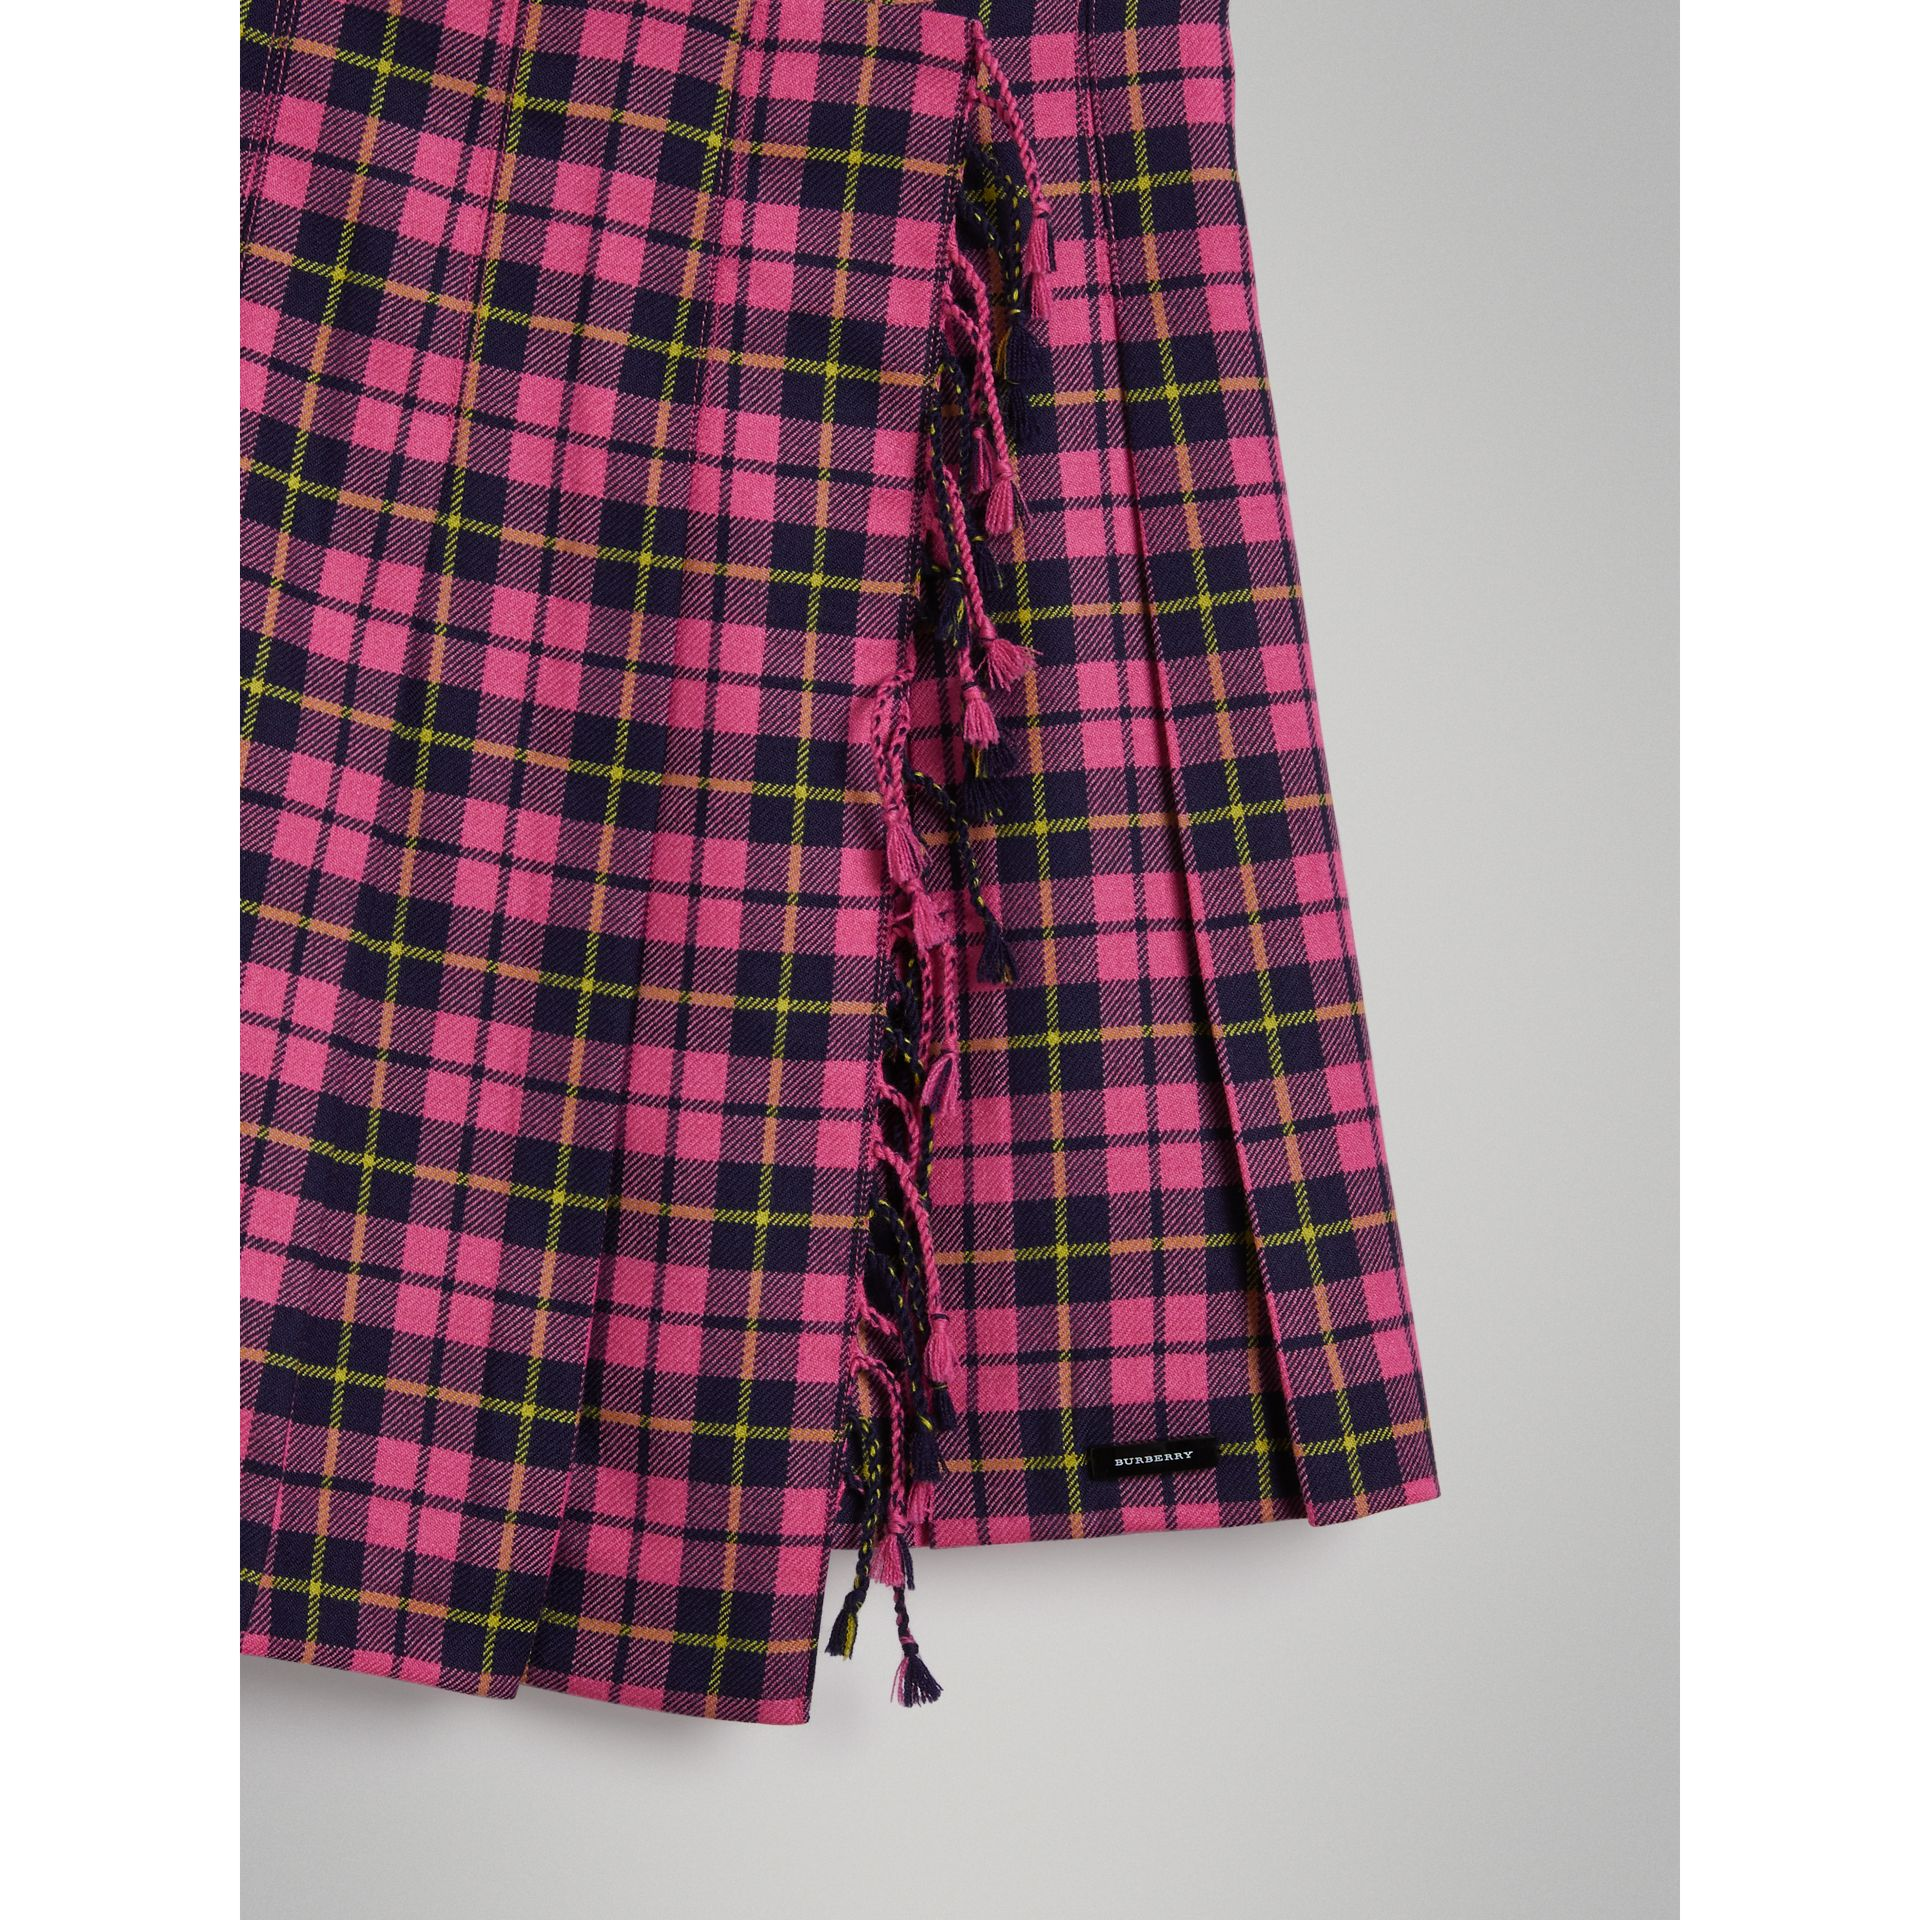 Fringe Detail Tartan Wool Kilt in Neon Pink - Girl | Burberry - gallery image 4